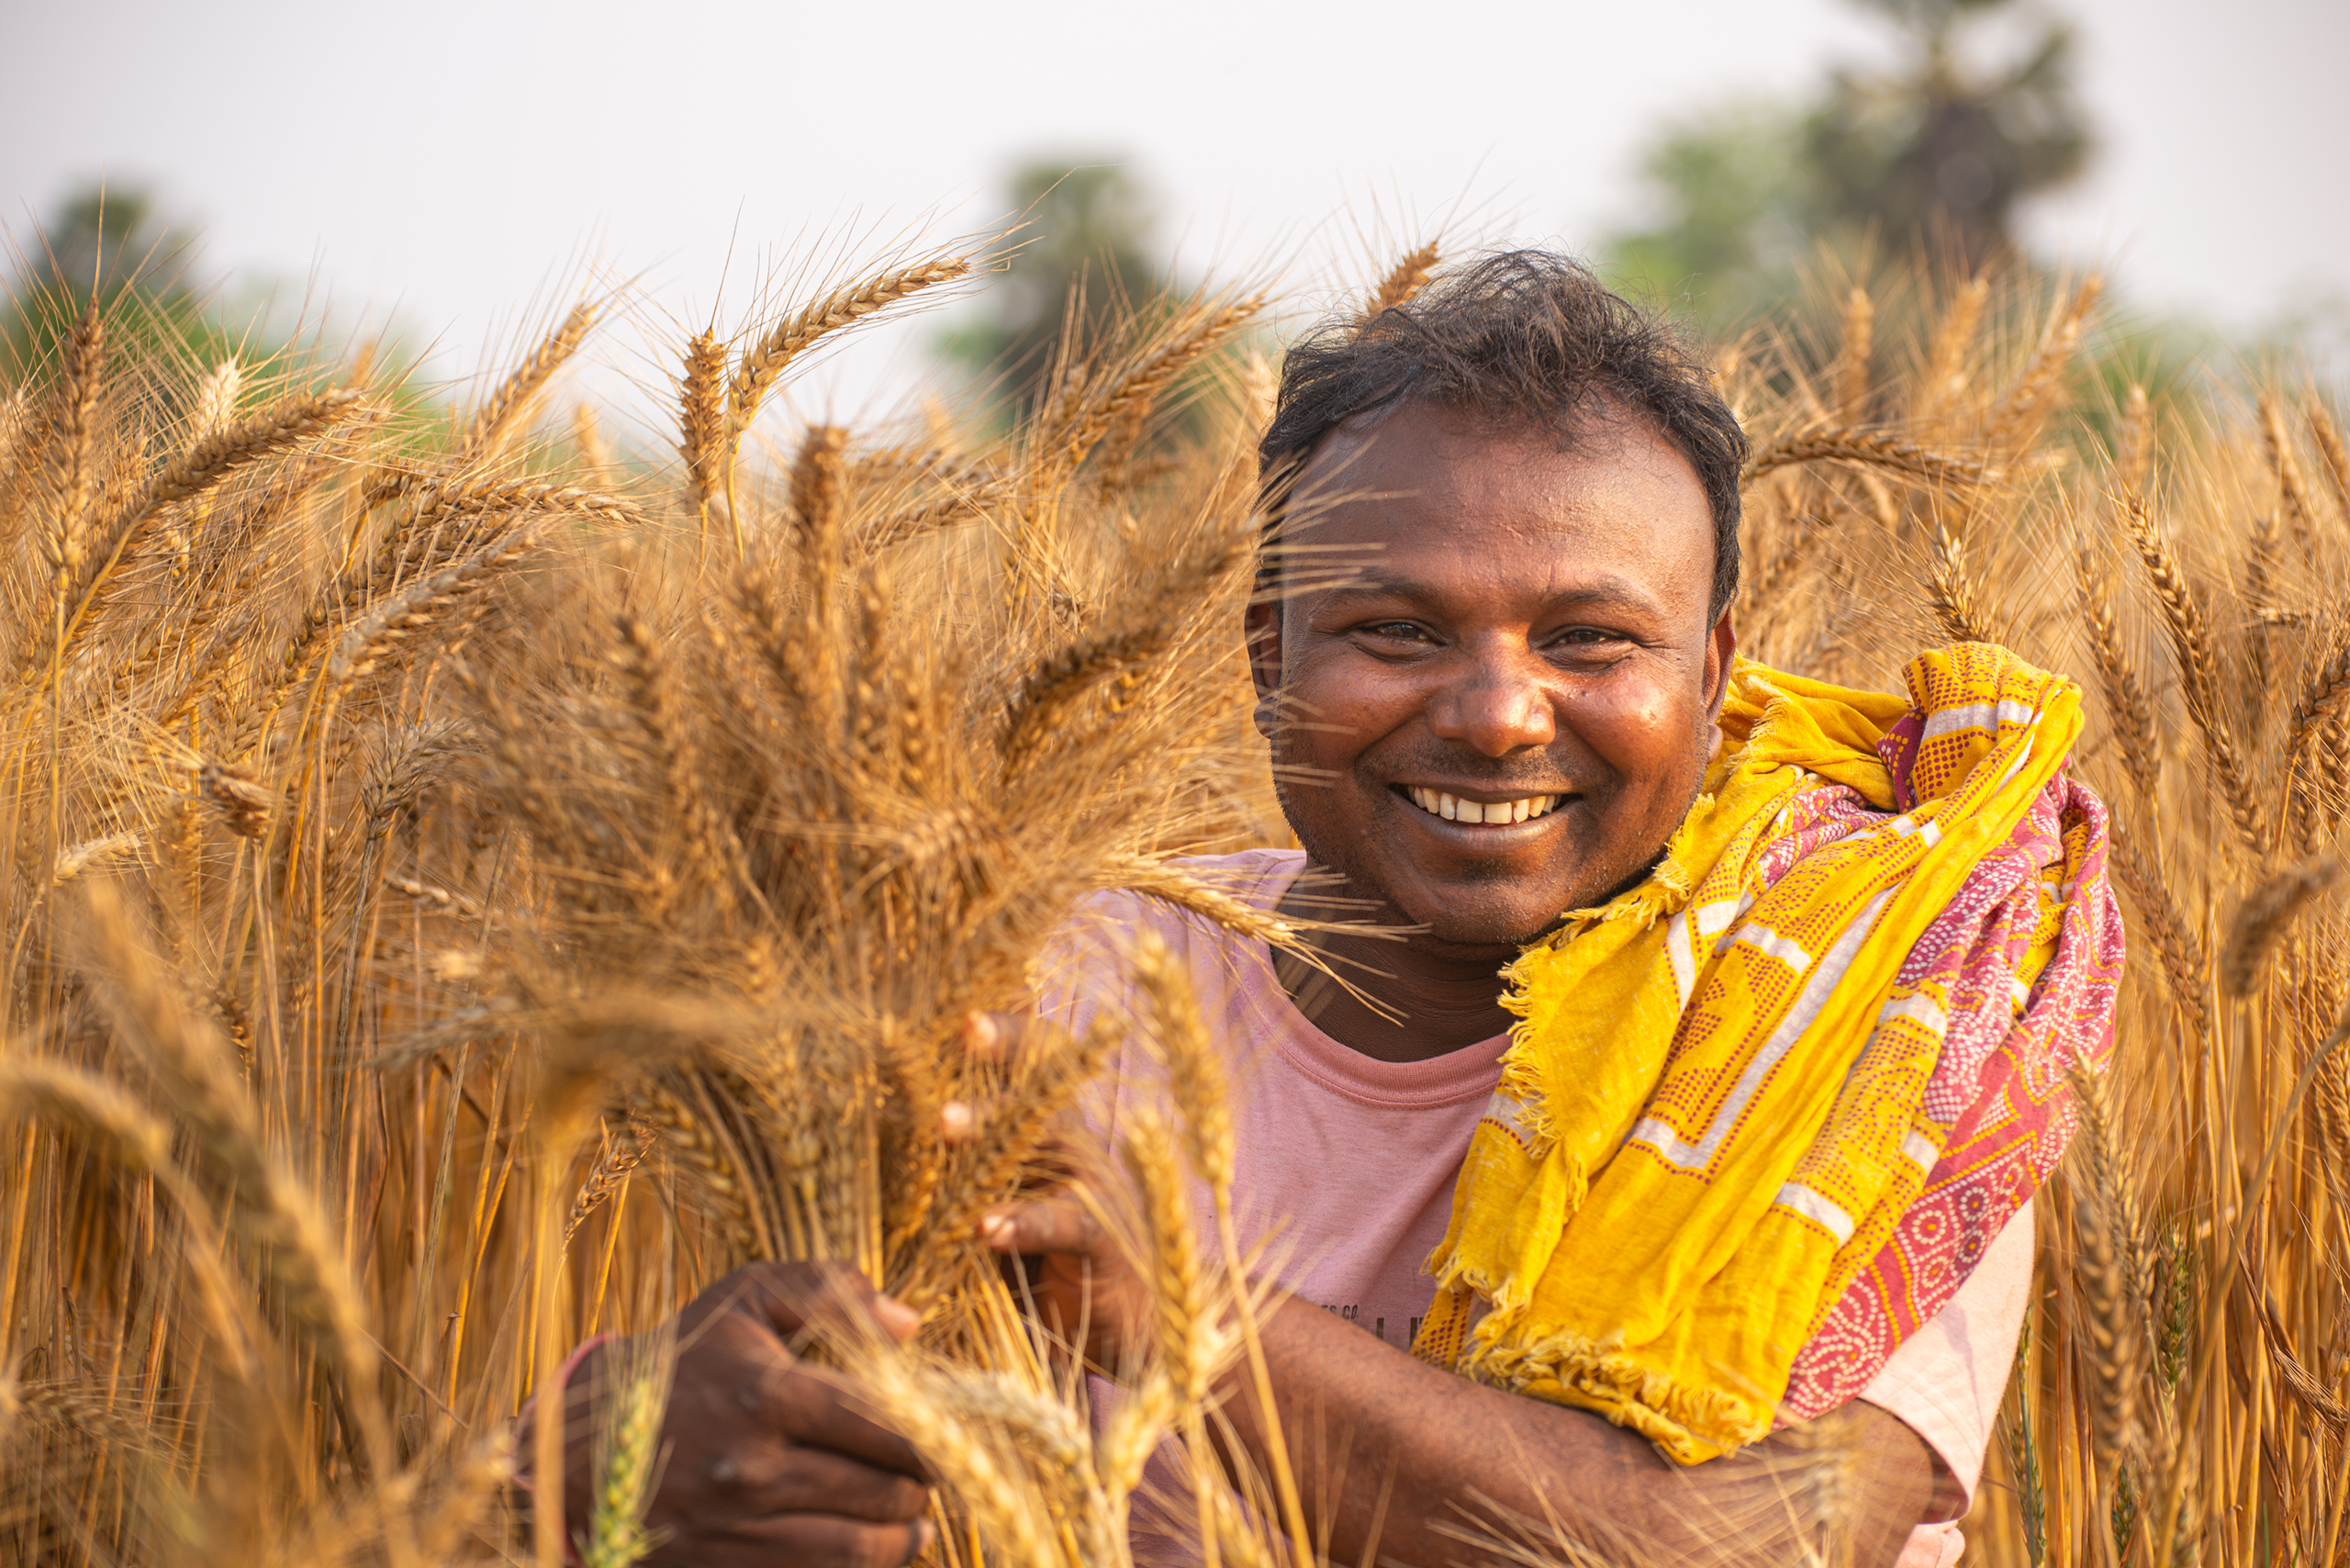 India's farmers feed billions of people, while fighting pest and weather related uncertainties. Is it too much to ask them to change their behavior and help support air quality with the food they grow? (Photo: Dakshinamurthy Vedachalam/CIMMYT)